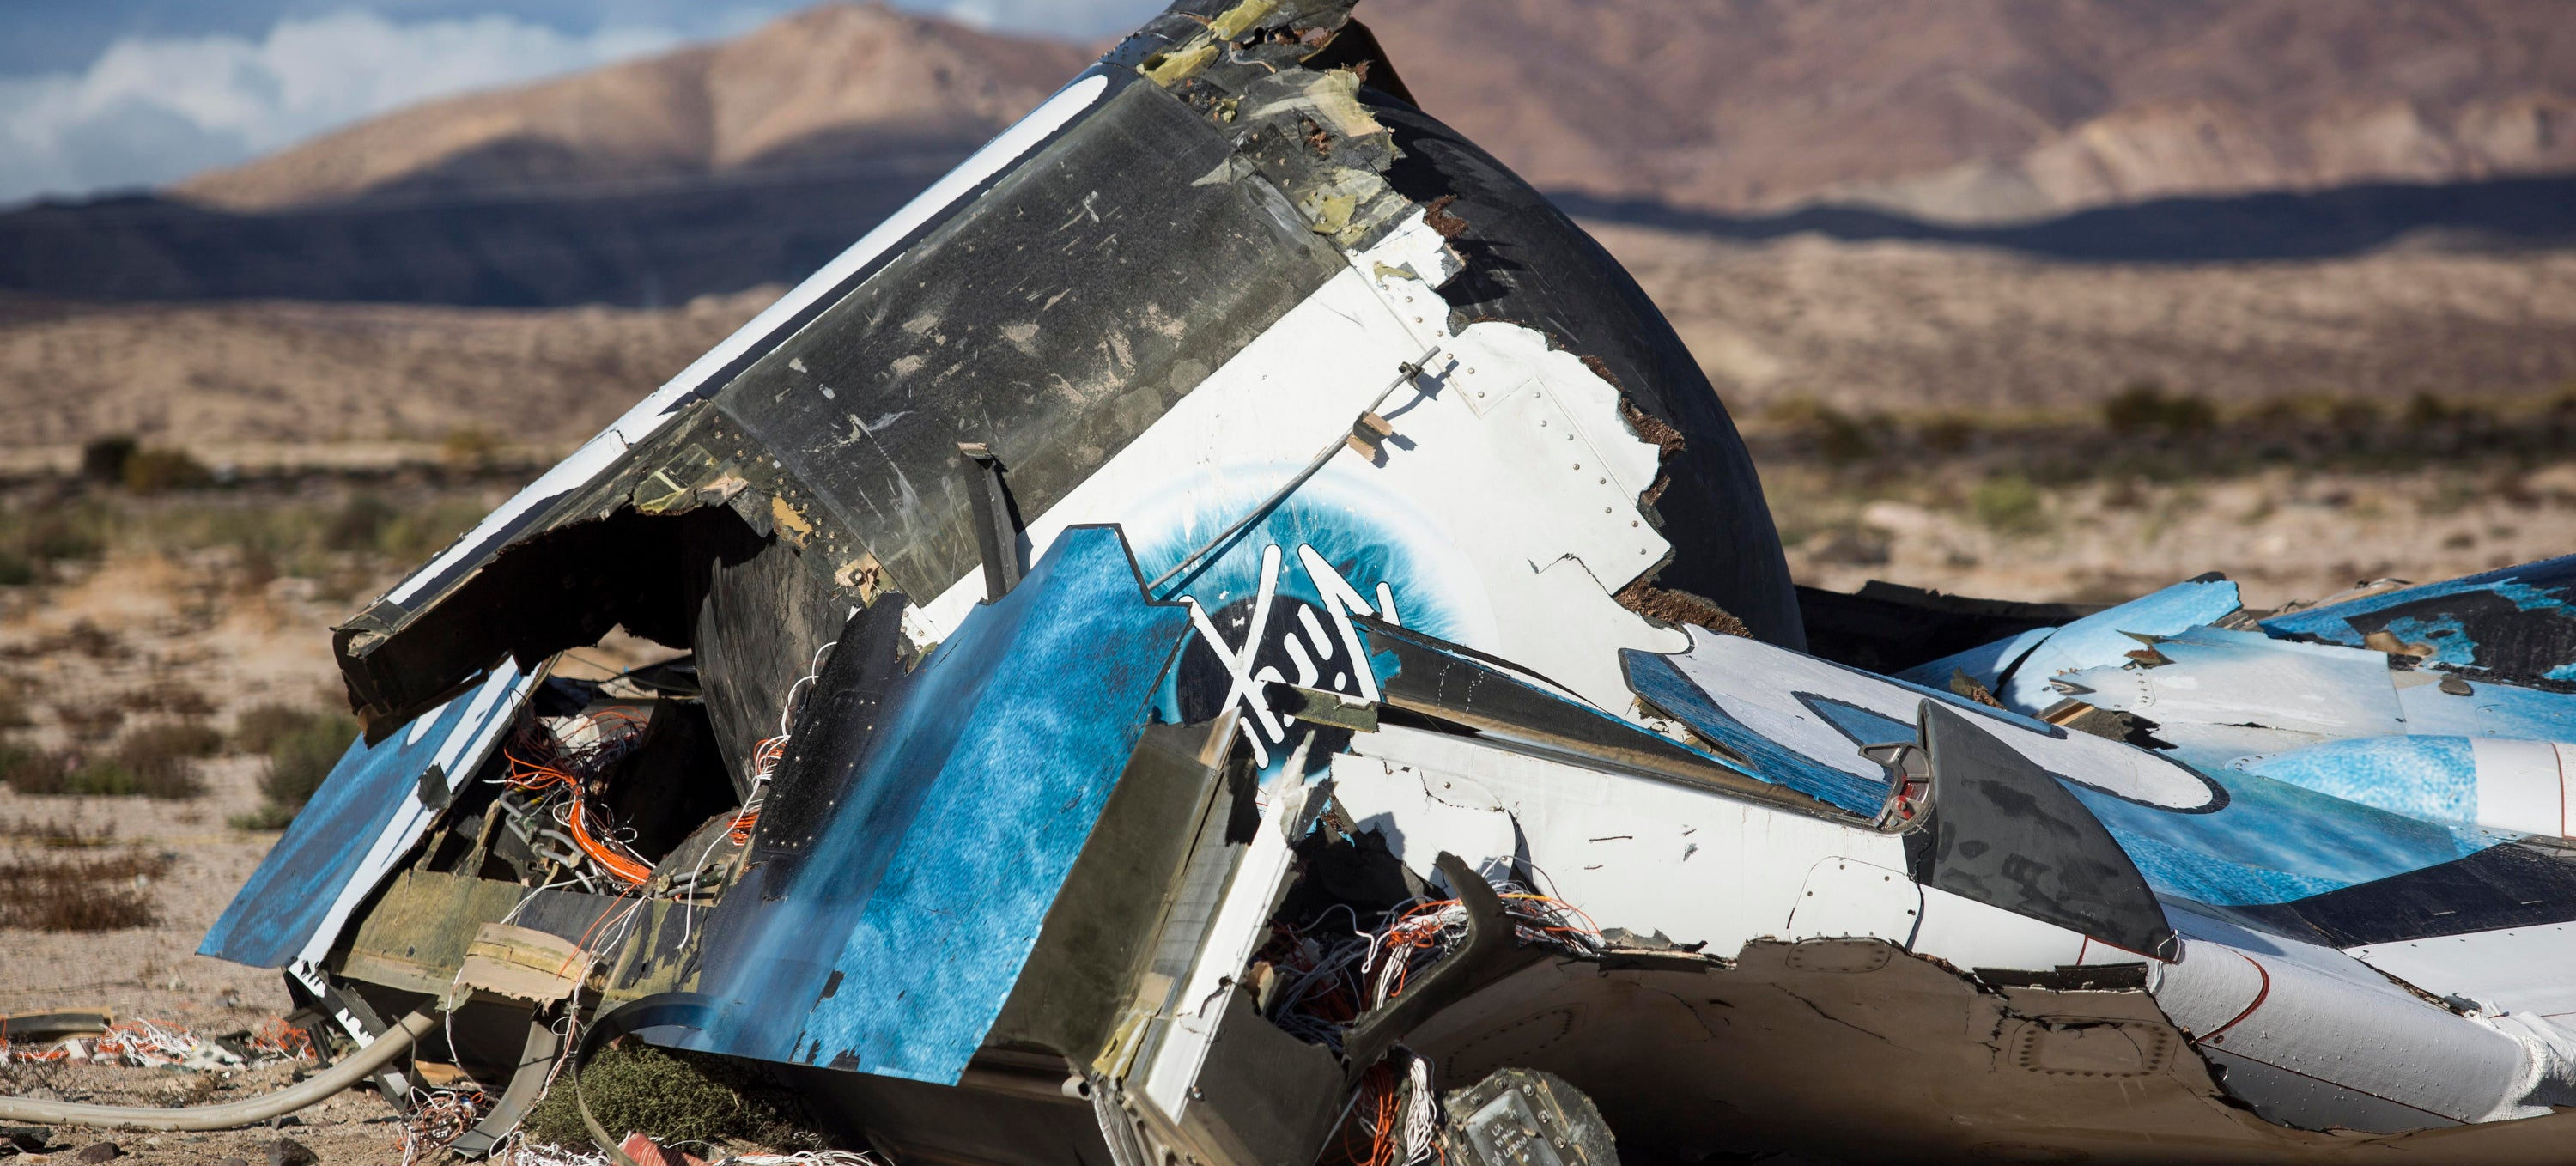 Virgin Galactic Pilot Speaks Out About SpaceShipTwo's Tragic Crash